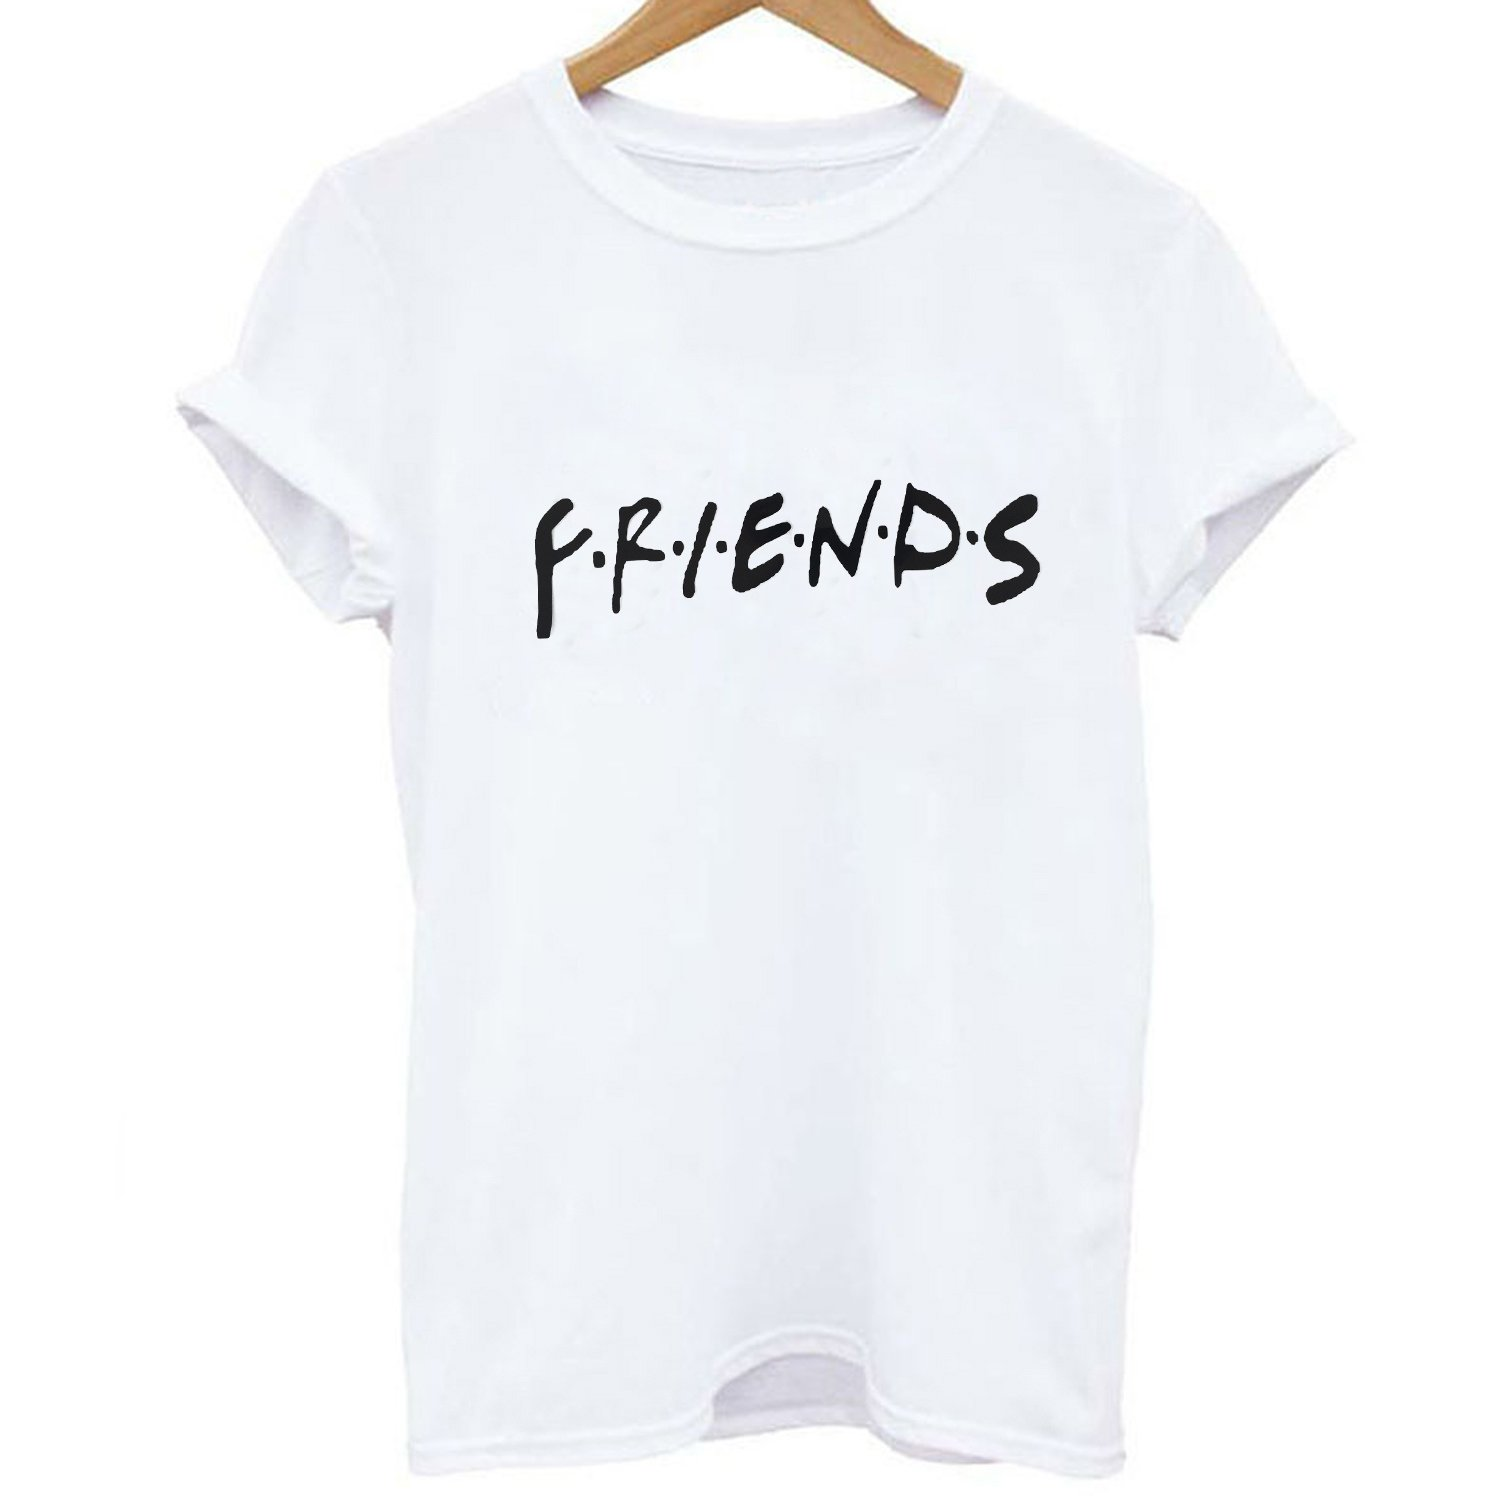 d9bac33a6a Style: Round neck, short-sleeve classic tee. Humorous Funny Printed Tops t  shirt for Men an Women. Casual wear. Suit for Spring, Summer, Autumn &  Winter .